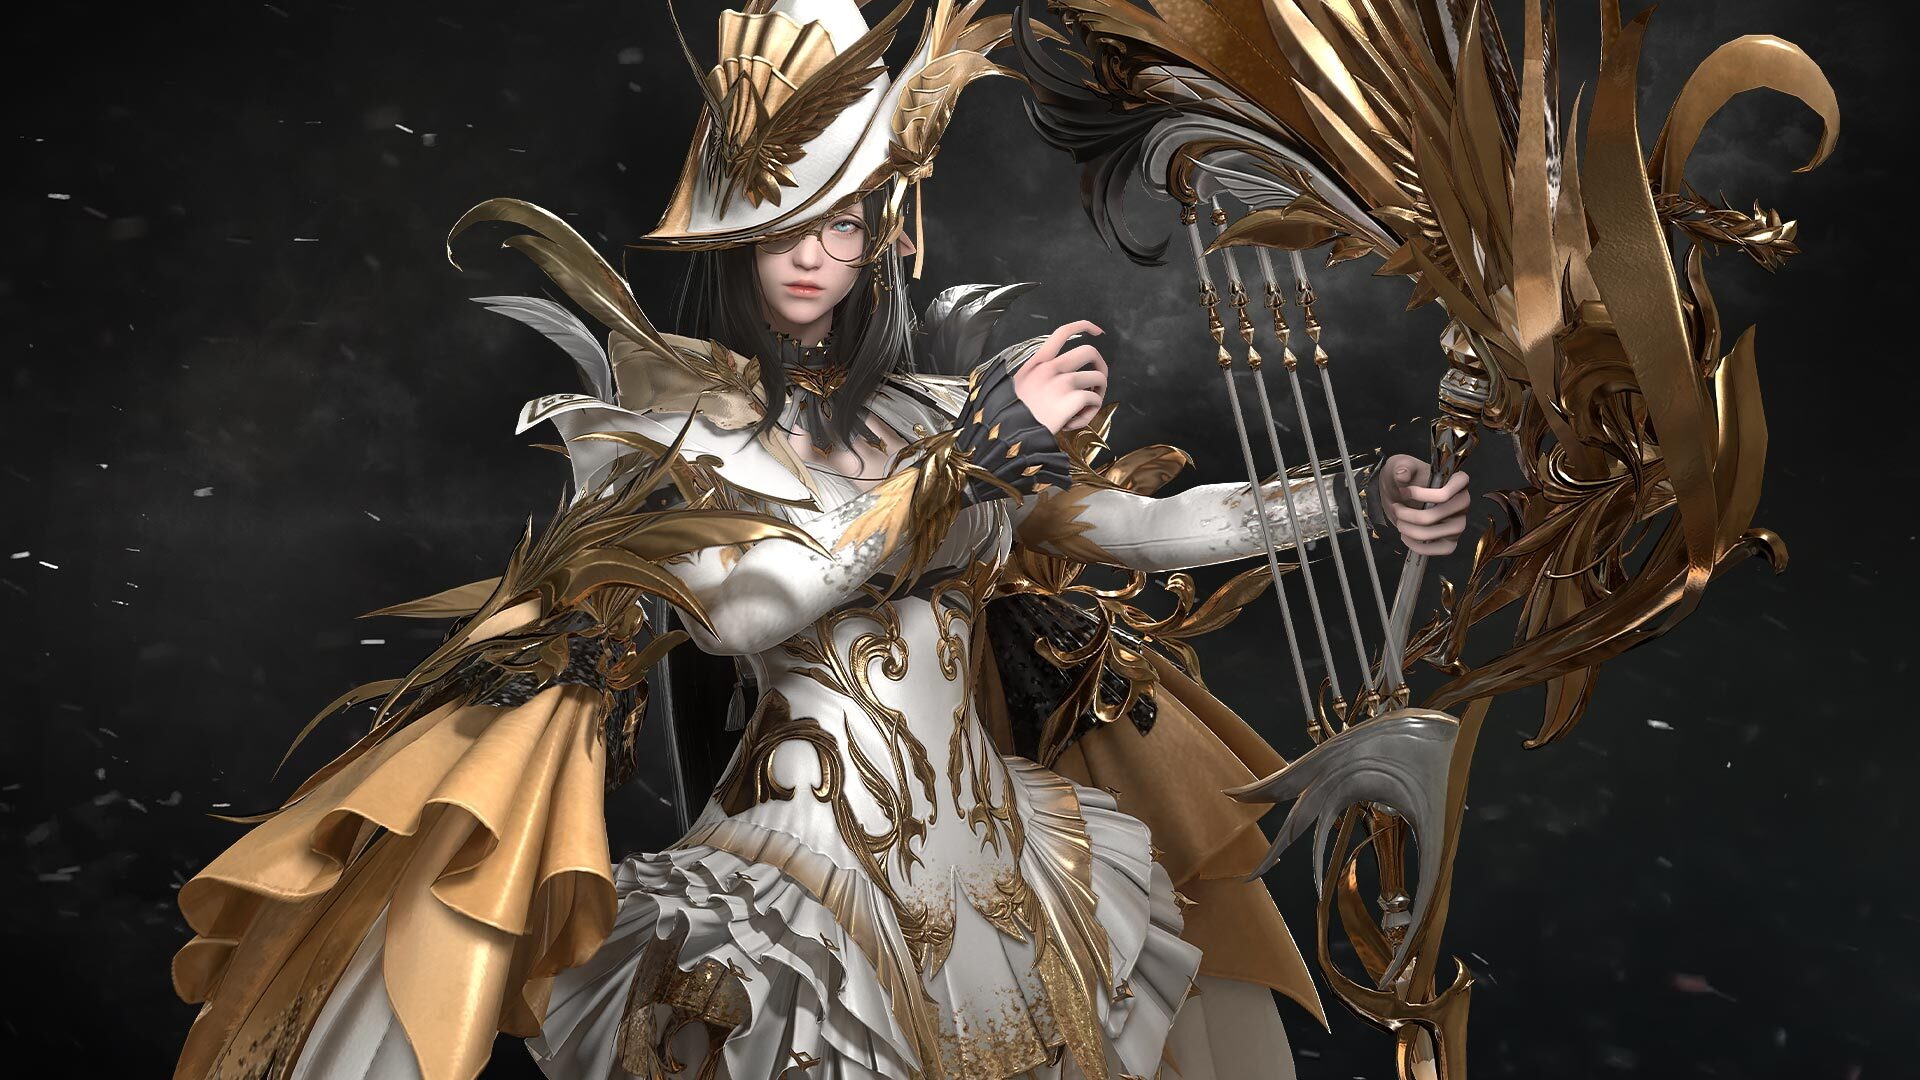 A woman dressed in ornate white and gold clothing holds a gilded harp in one hand.